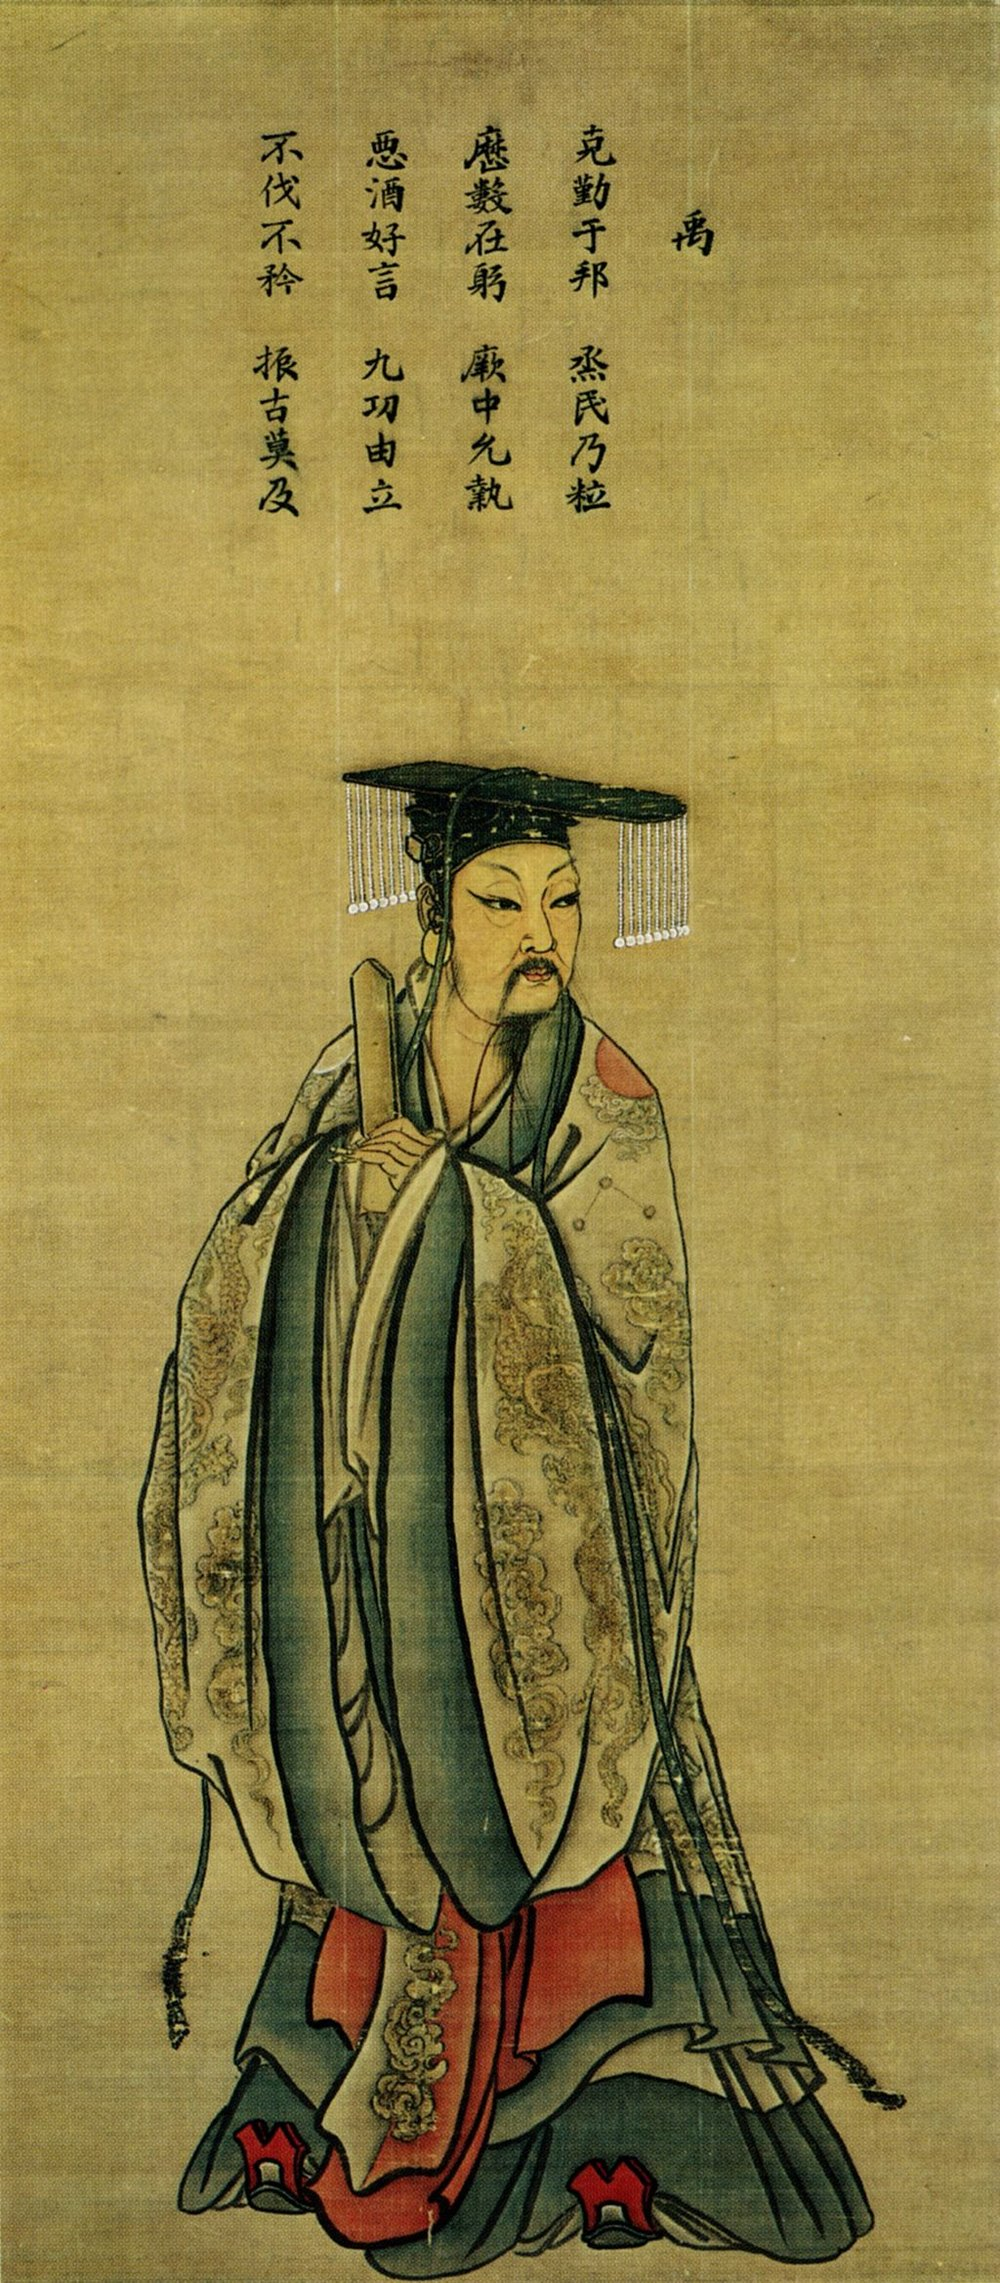 King Yu of Xia |  Ma Lin/Wikimedia Commons